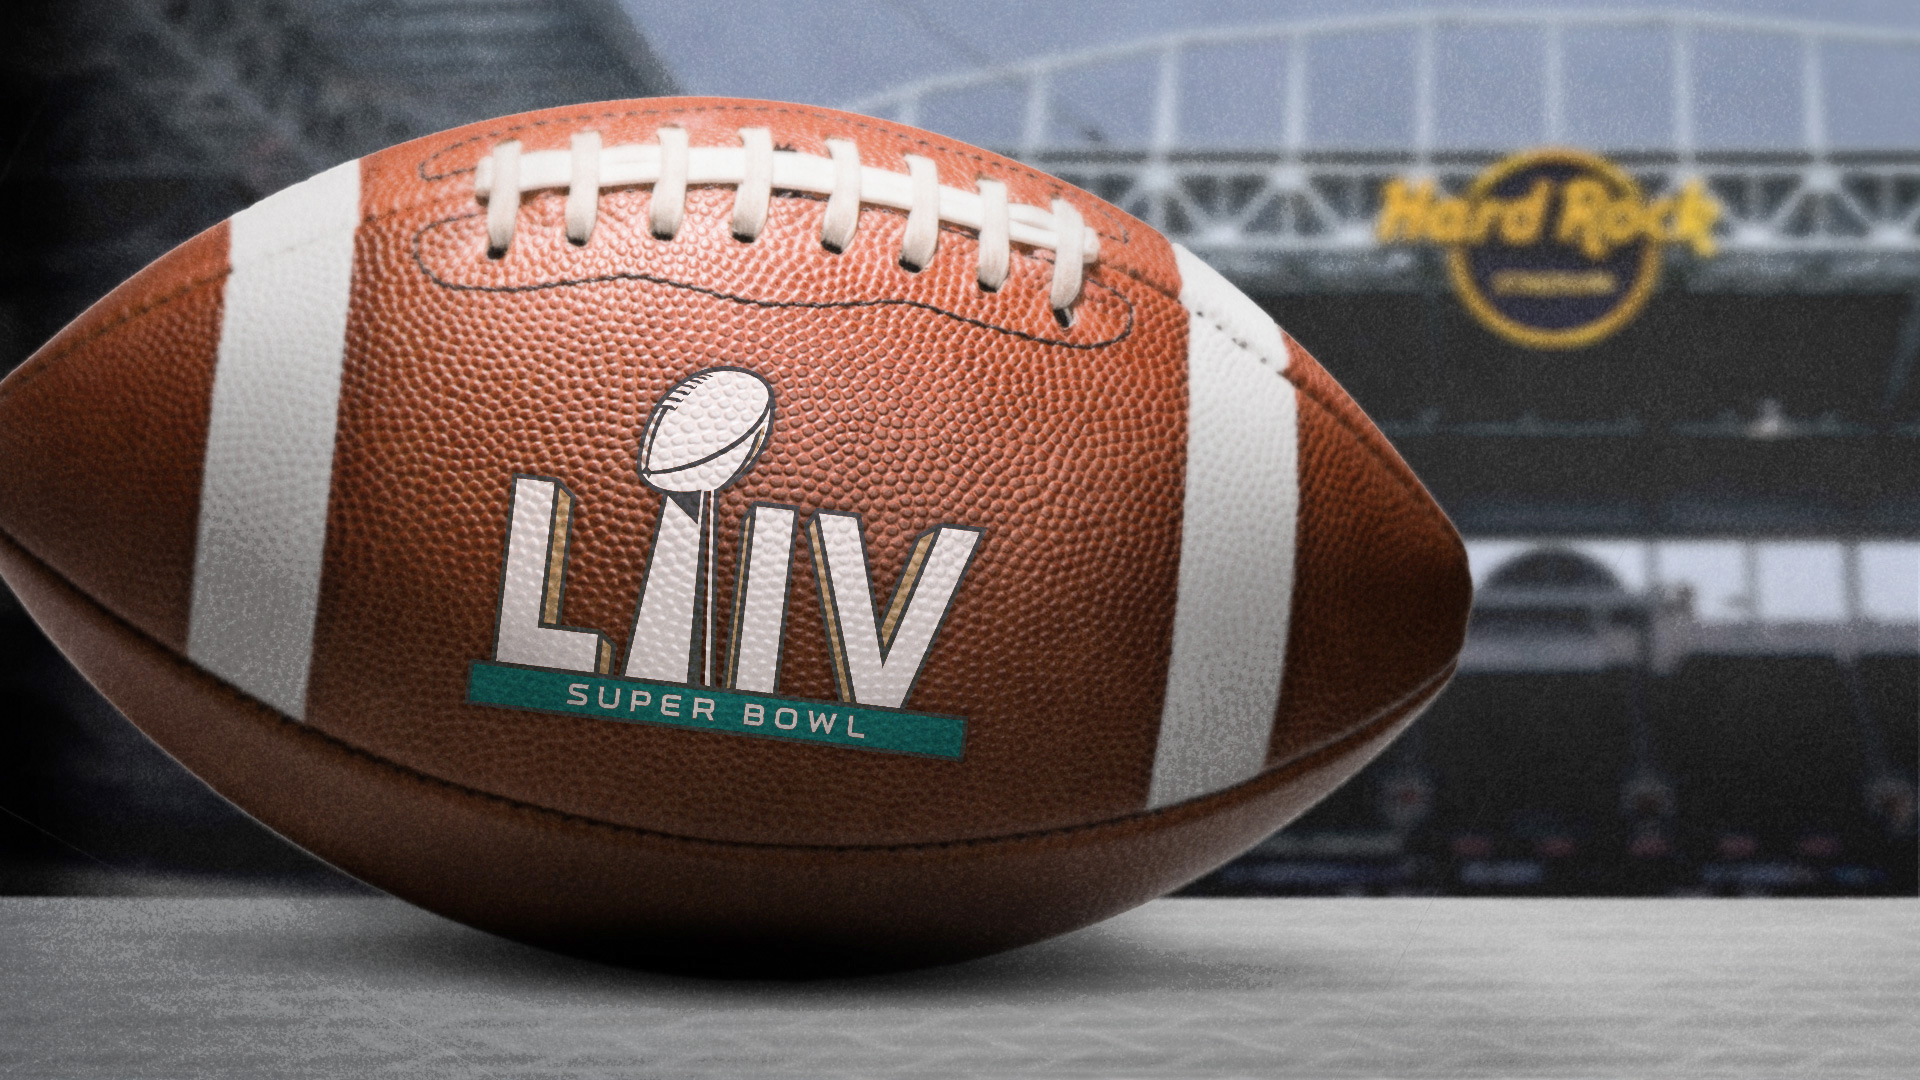 Best Super Bowl Ads Top Commercials shown during the Halftime that created New Trends